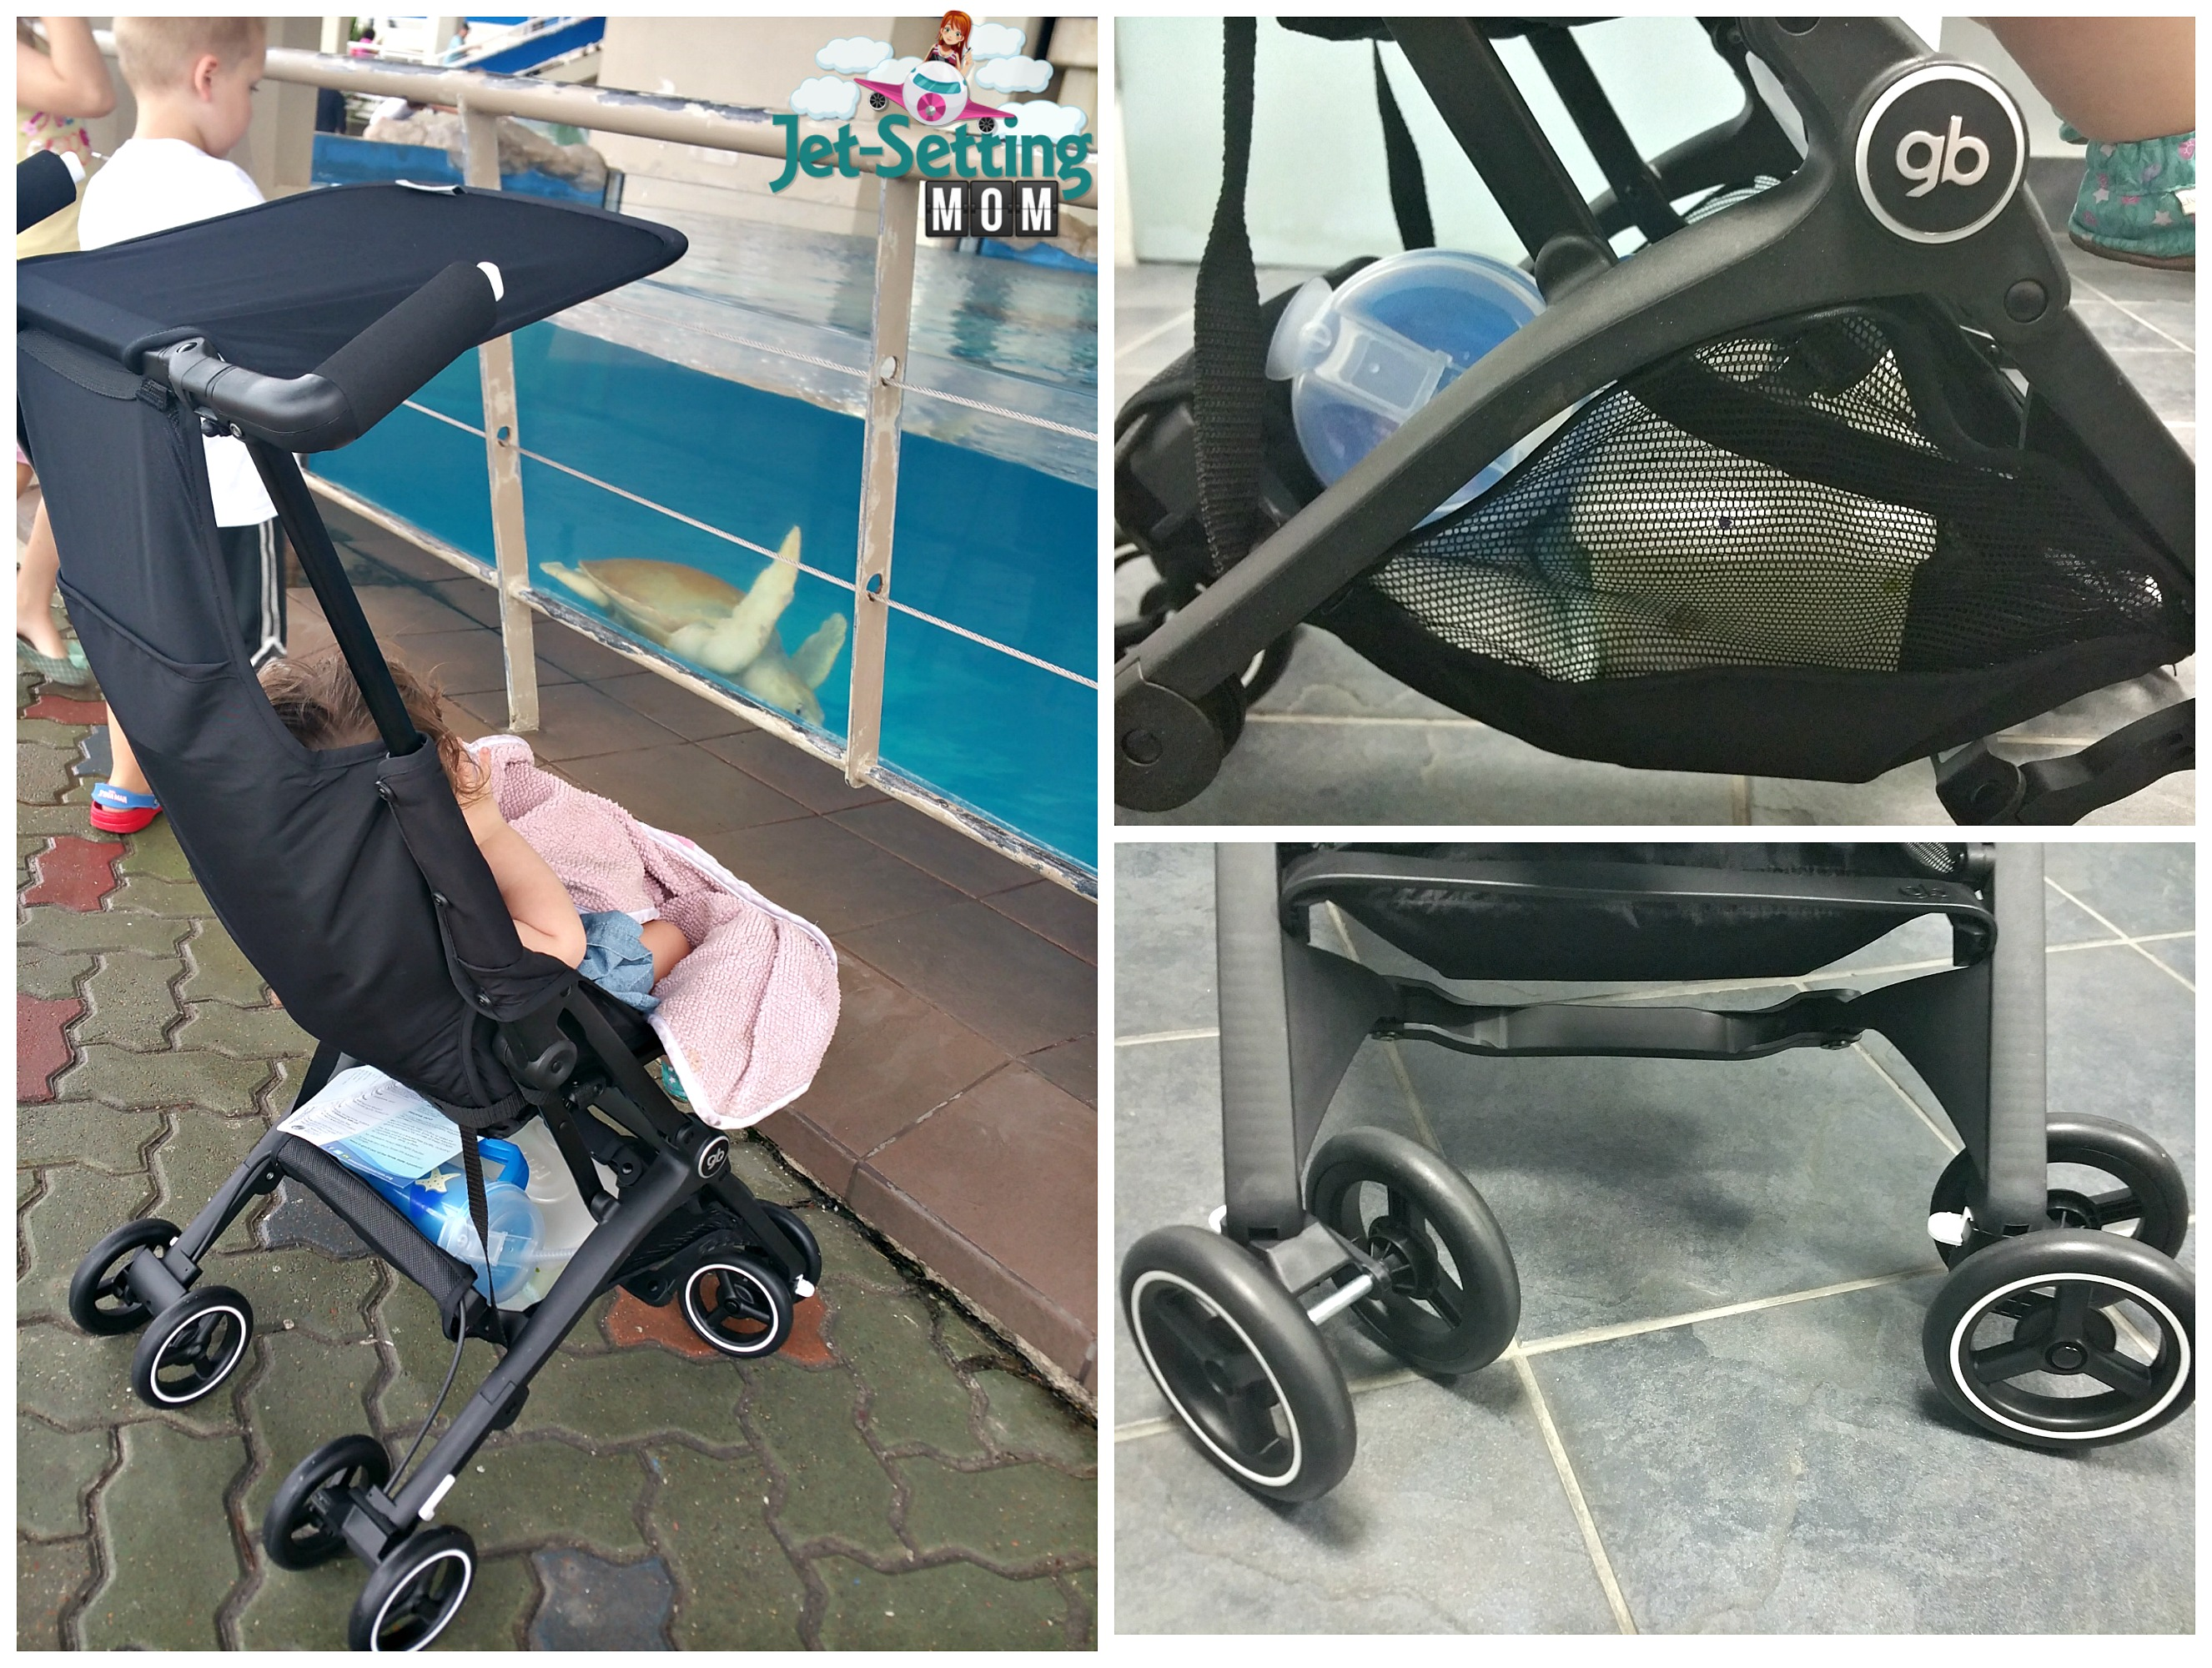 gb Pockit is the perfect on the go stroller